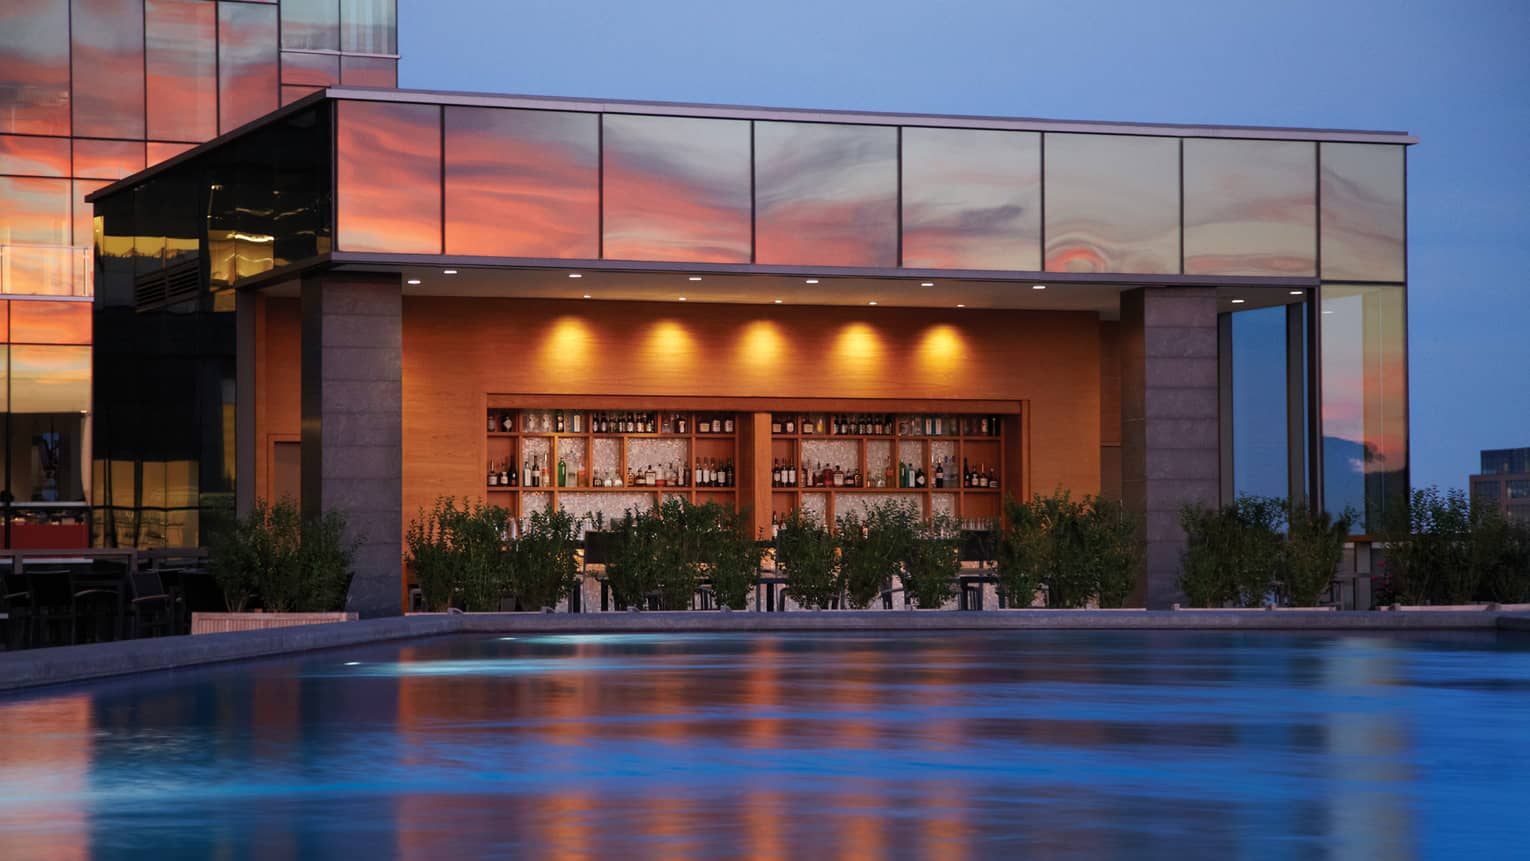 Illuminated swimming pool, wood bar and liquor displays under glass building exterior at sunset